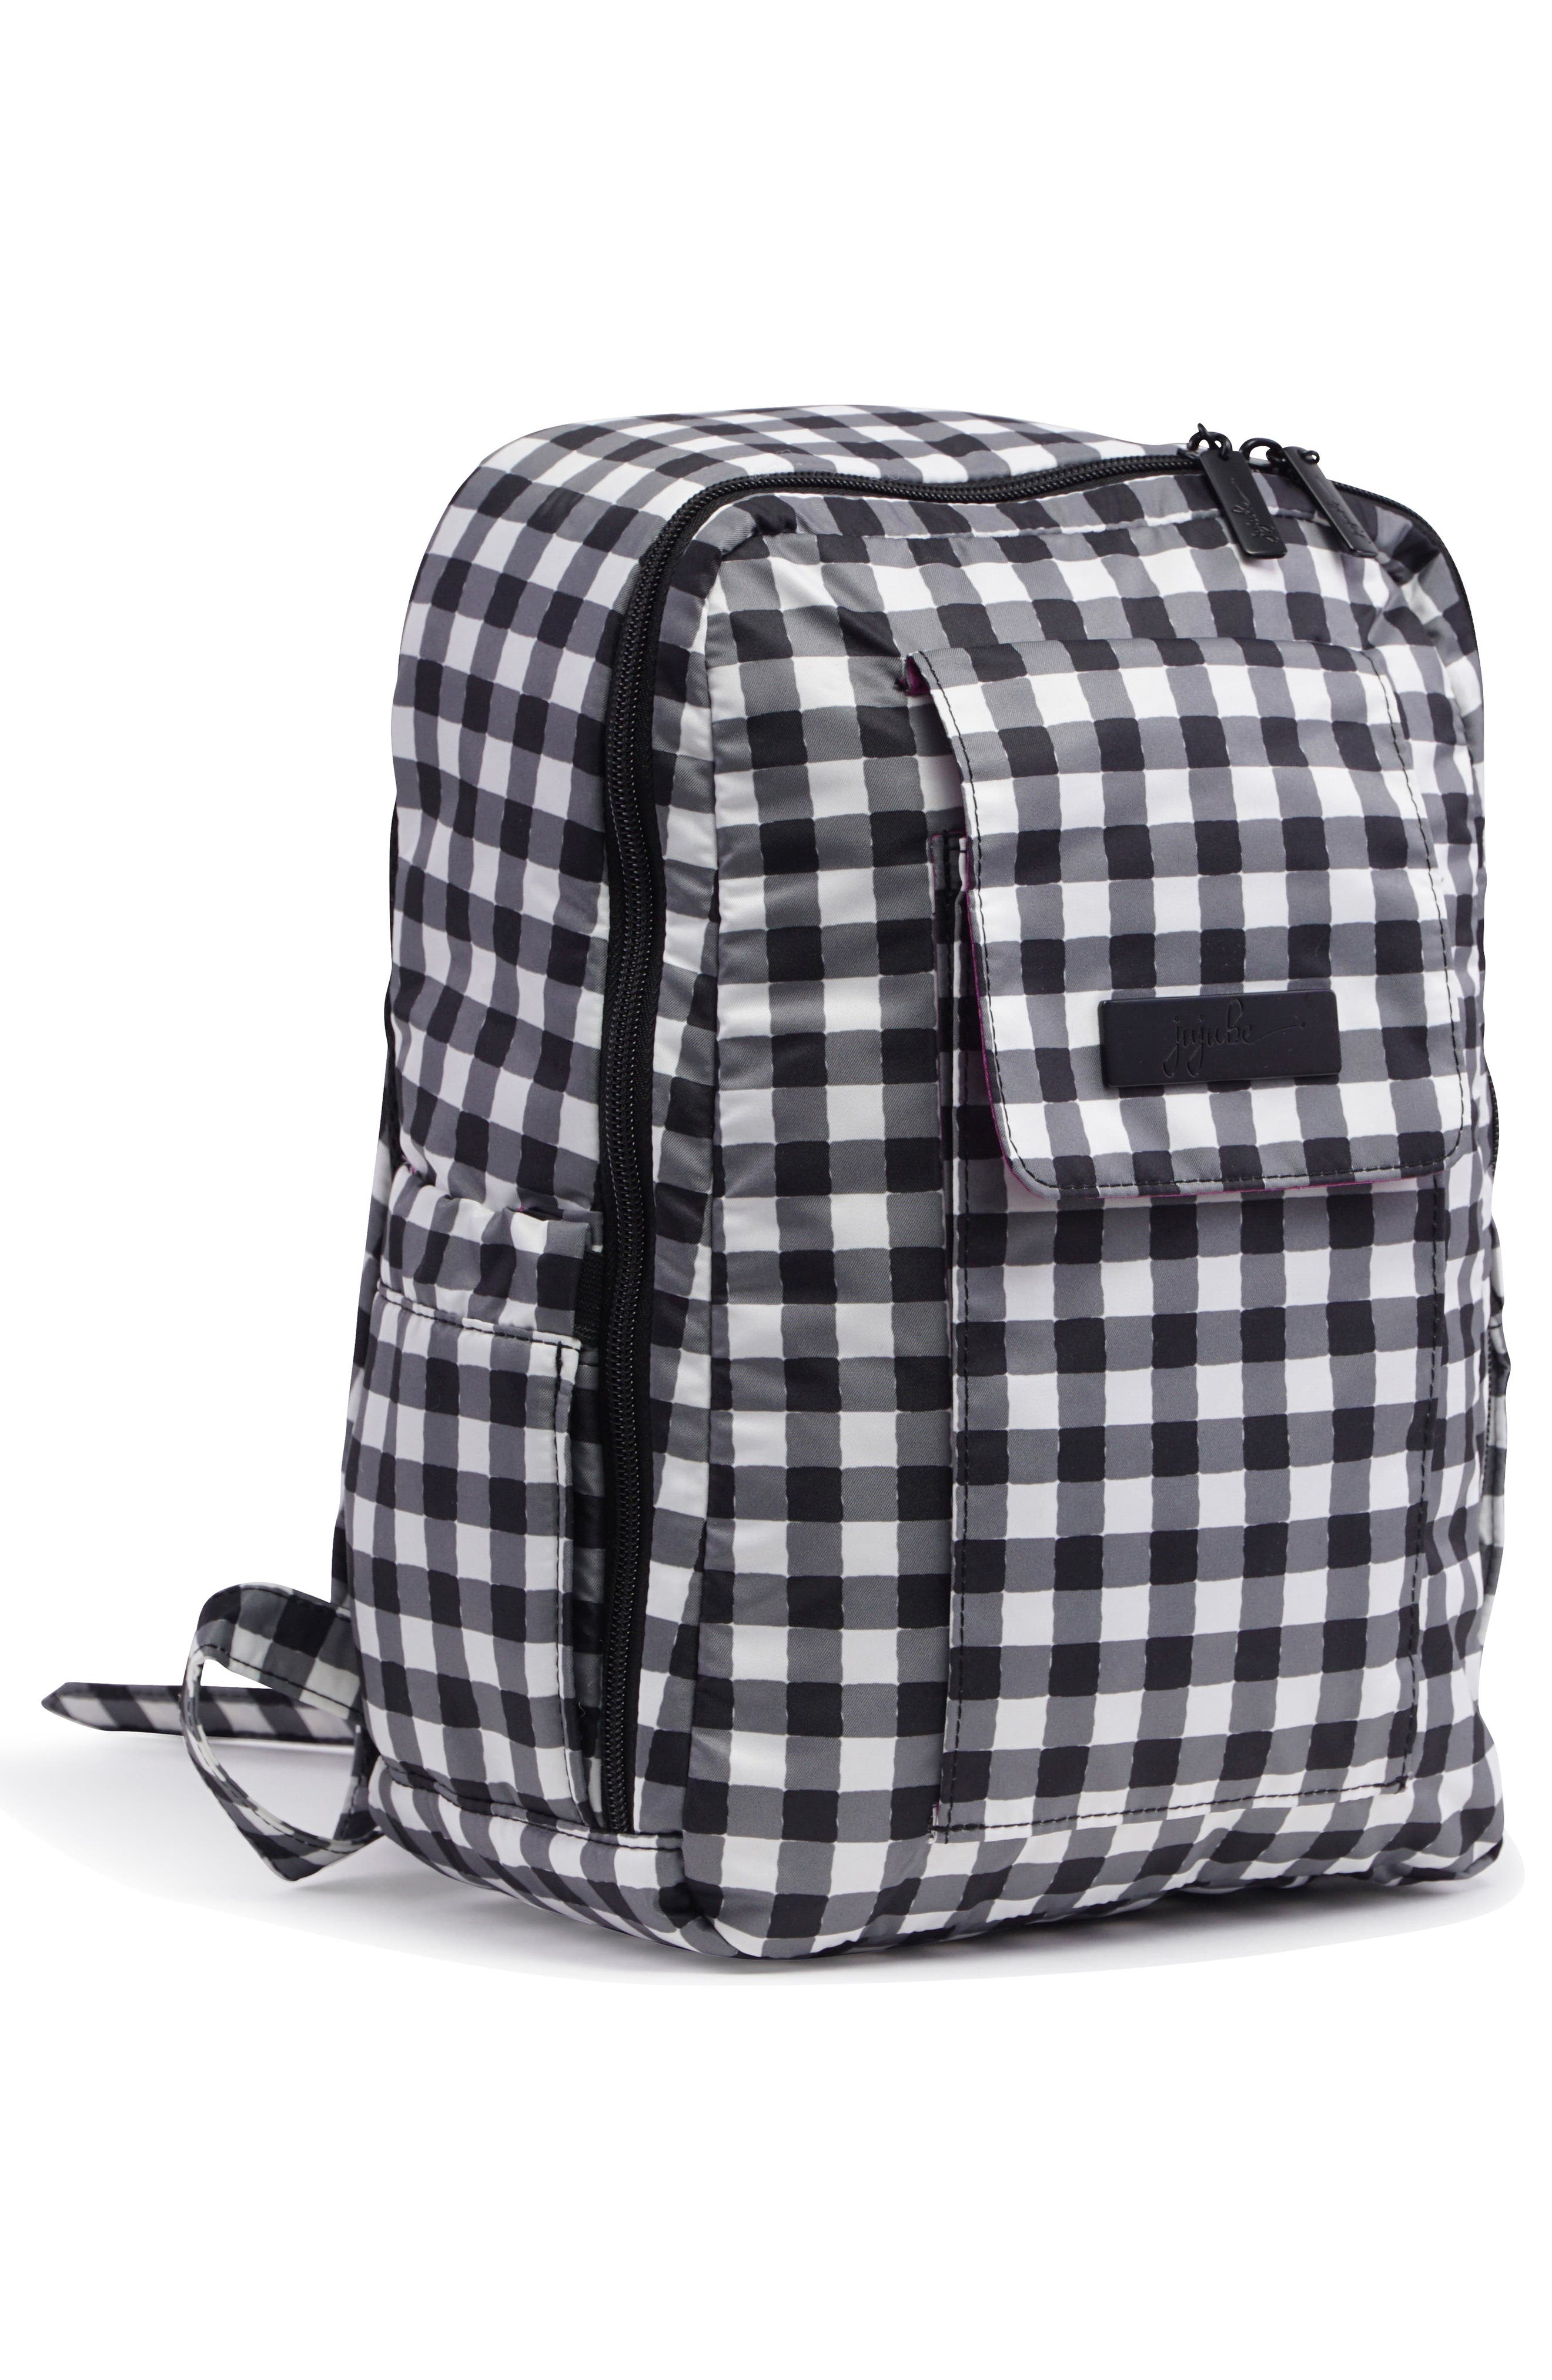 'Mini Be - Onyx Collection' Backpack,                             Alternate thumbnail 4, color,                             Gingham Style